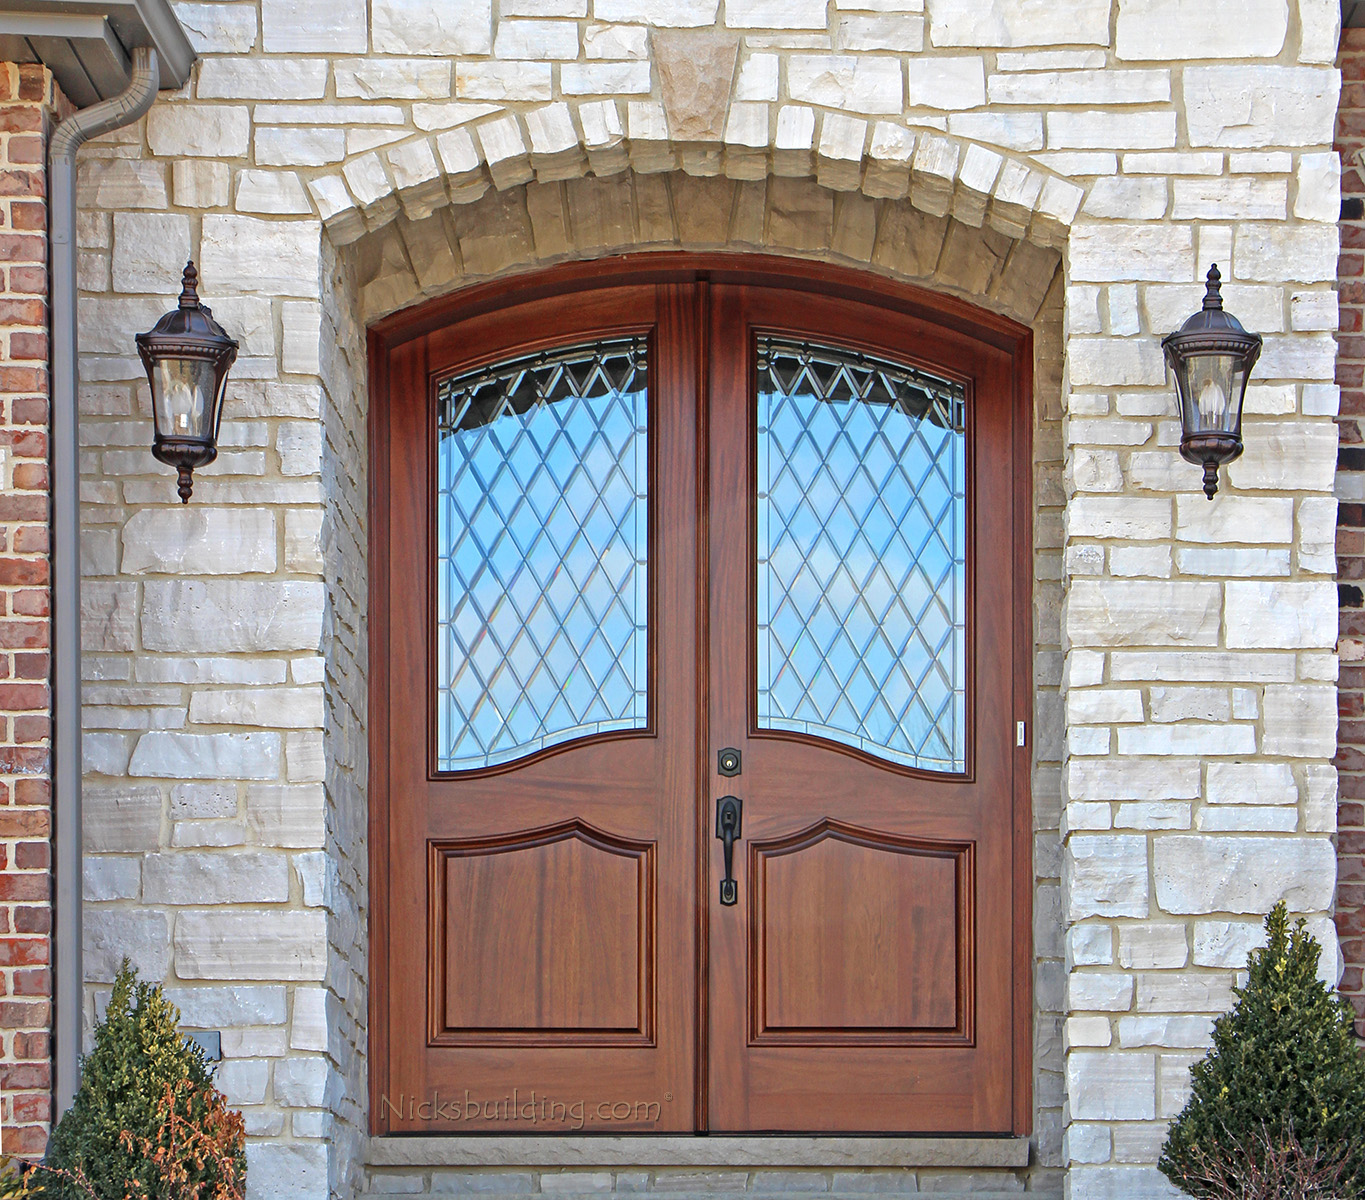 1200 #2175AA  Round Top Door African Mahogany Doors Arched Round Top Doors picture/photo Arched Doors With Glass 42191365